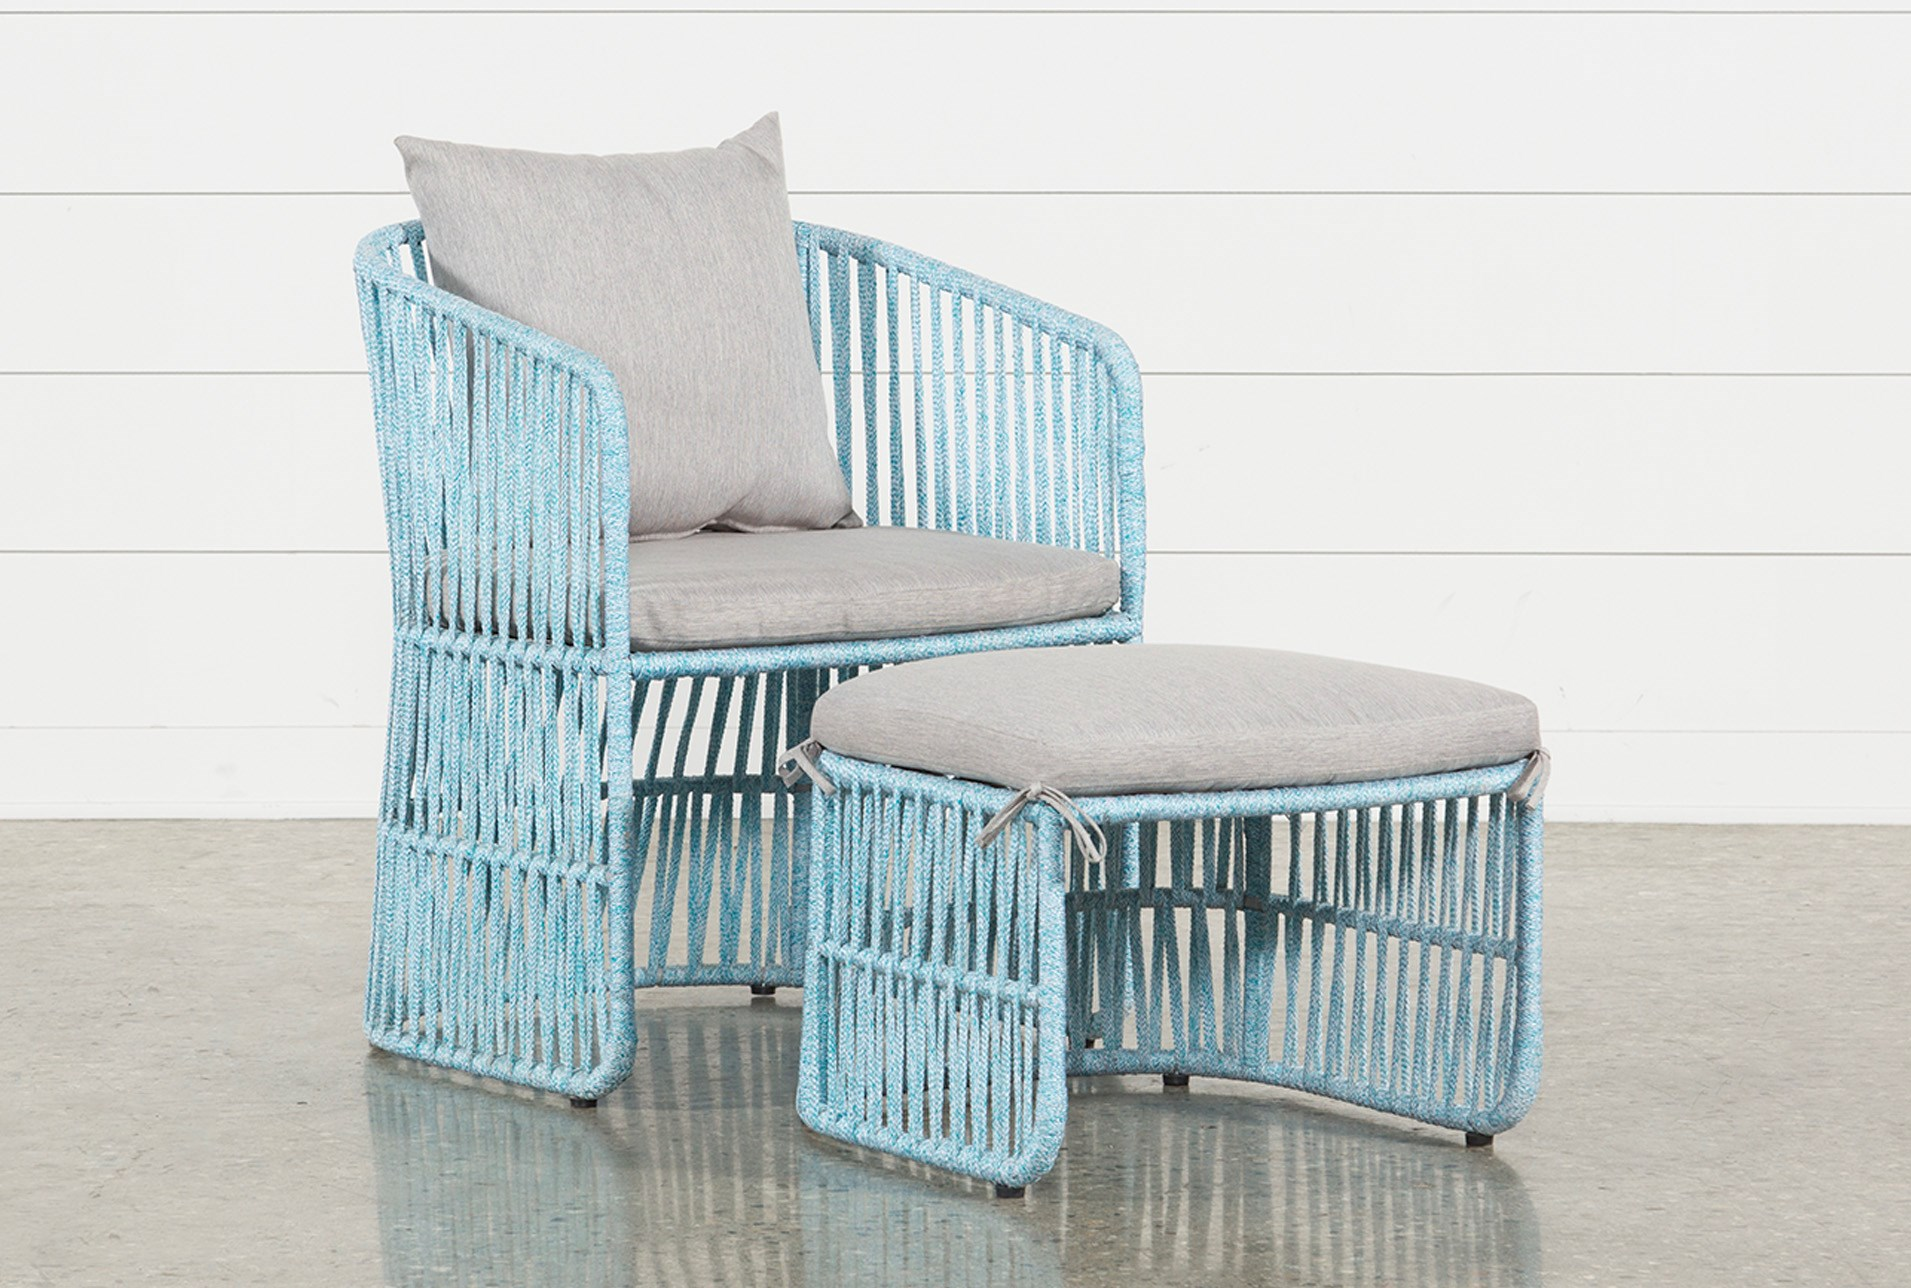 Outdoor Nautical Teal Rope Lounge Chair And Ottoman Qty 1 Has Been Successfully Added To Your Cart